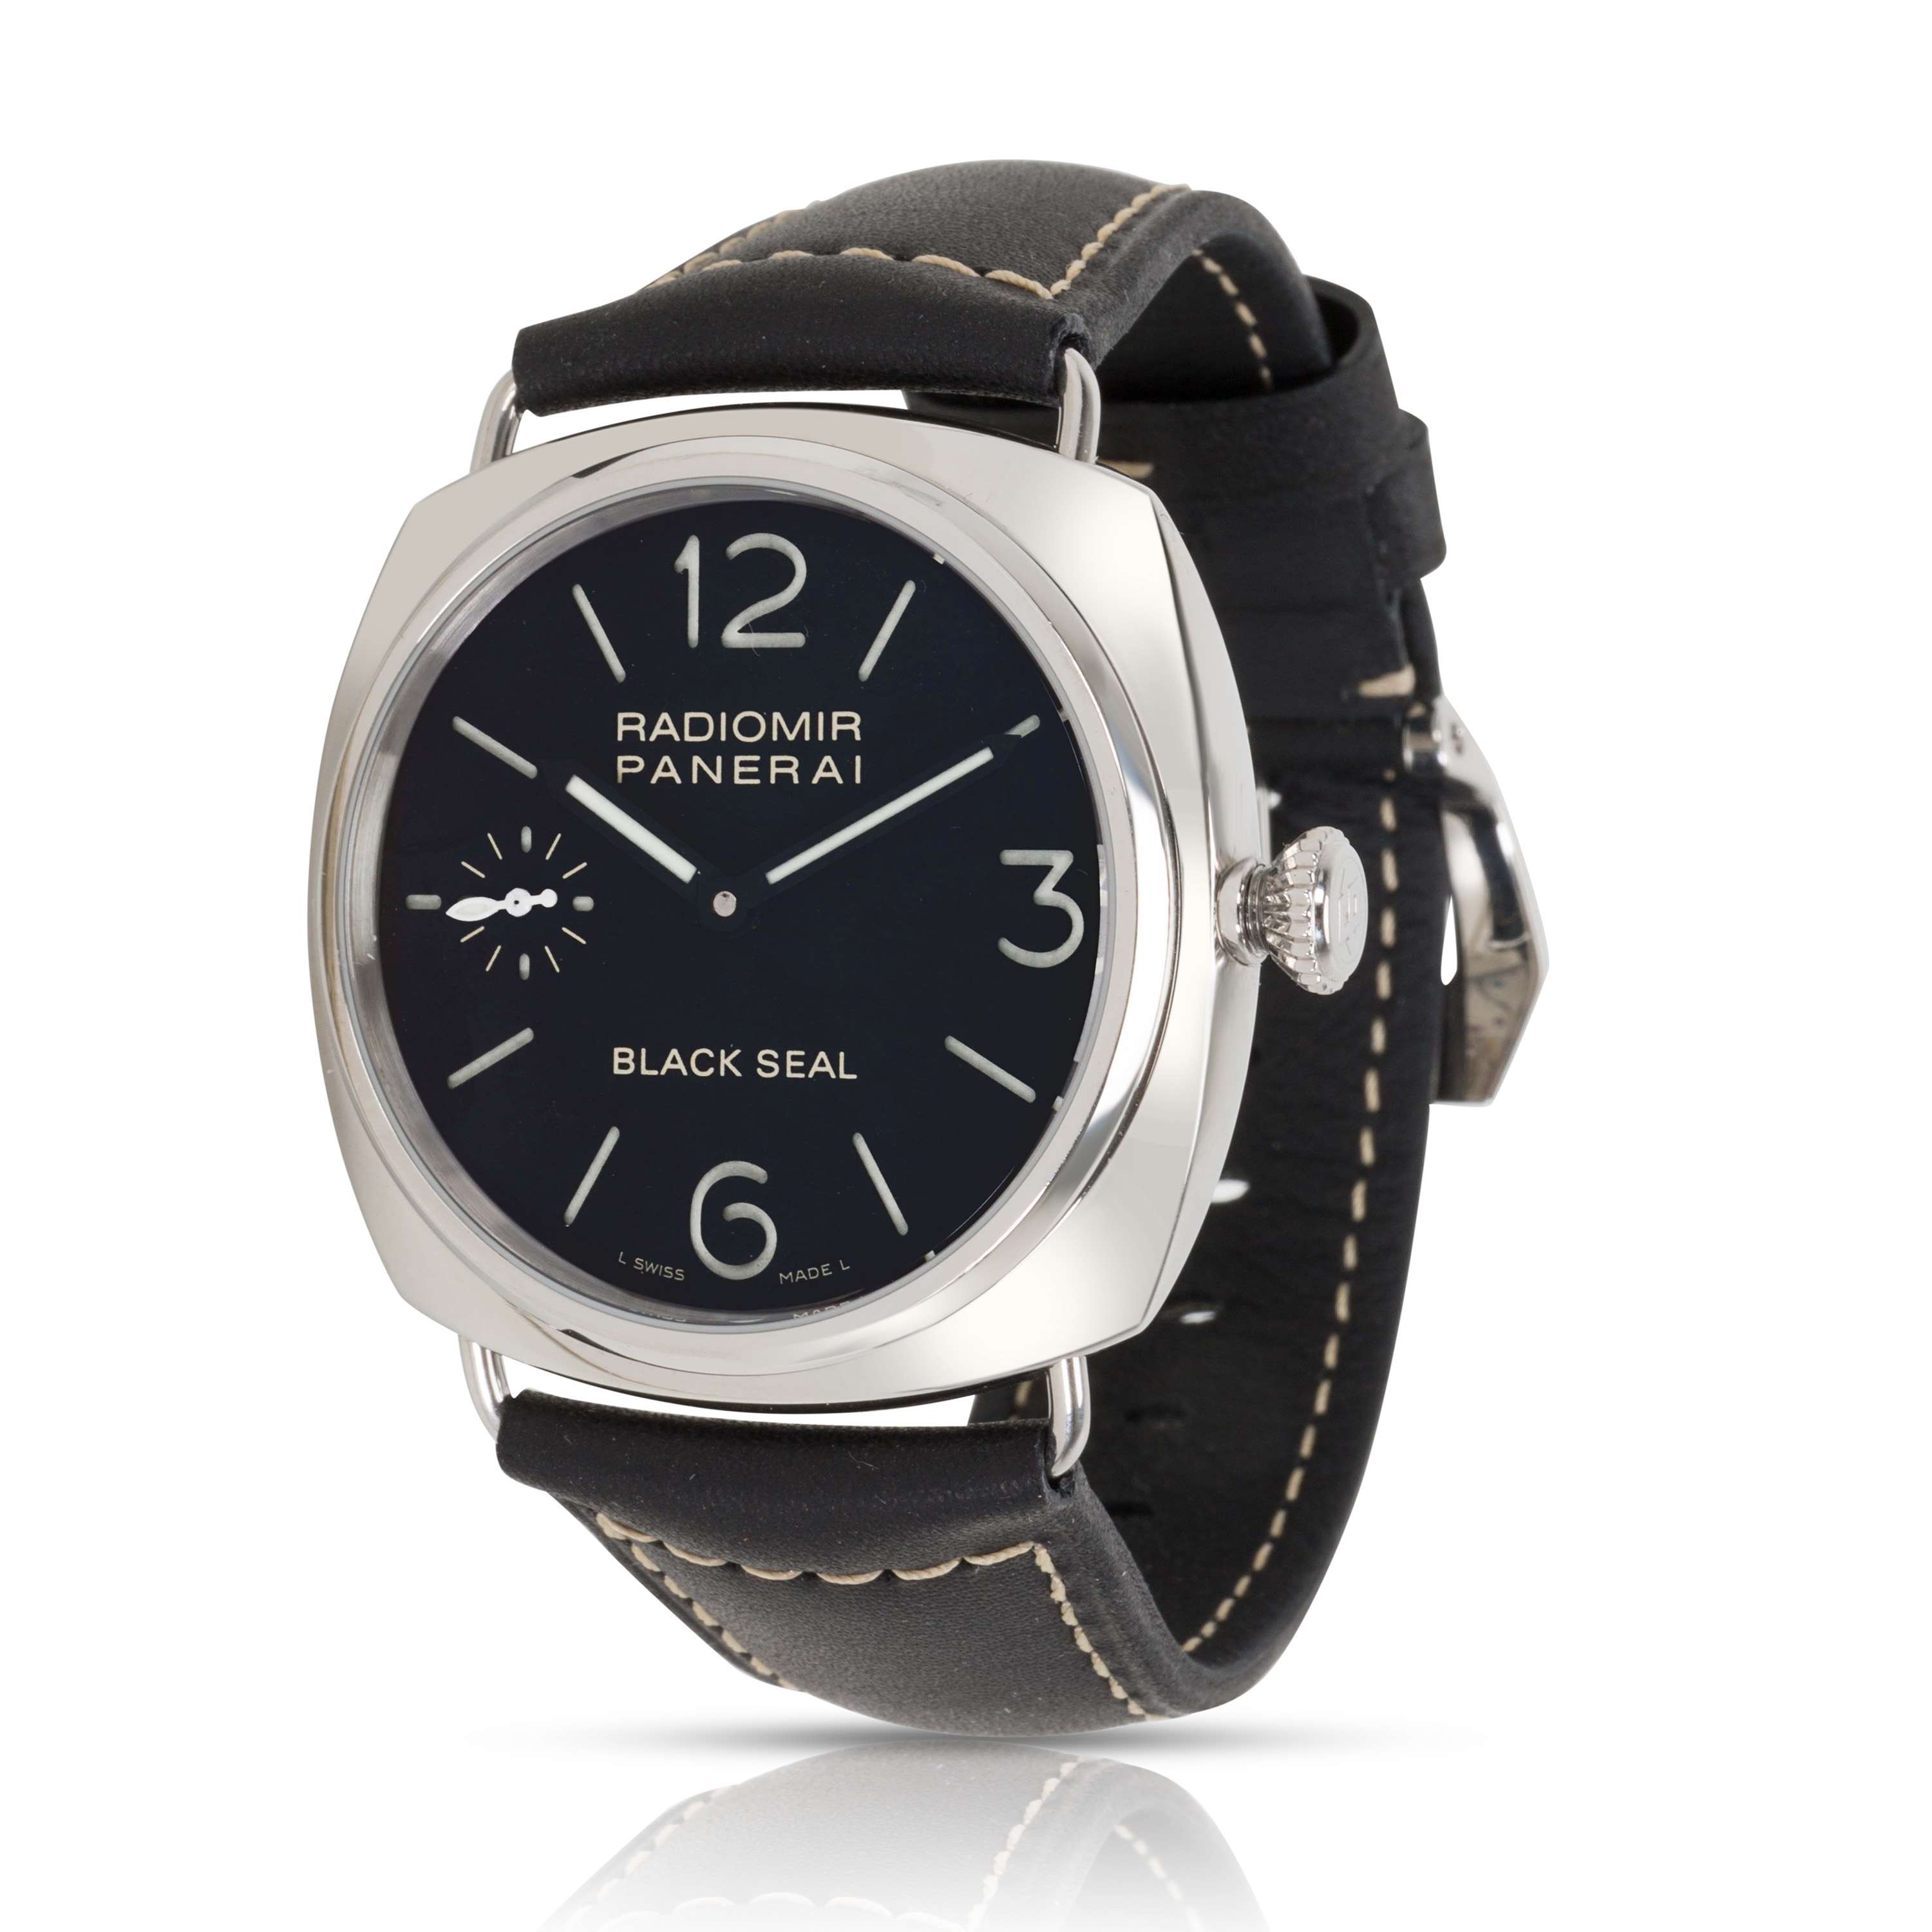 a77316f096eb Panerai Radiomir Black Seal PAM 00183 Mens Watch in Stainless Steel